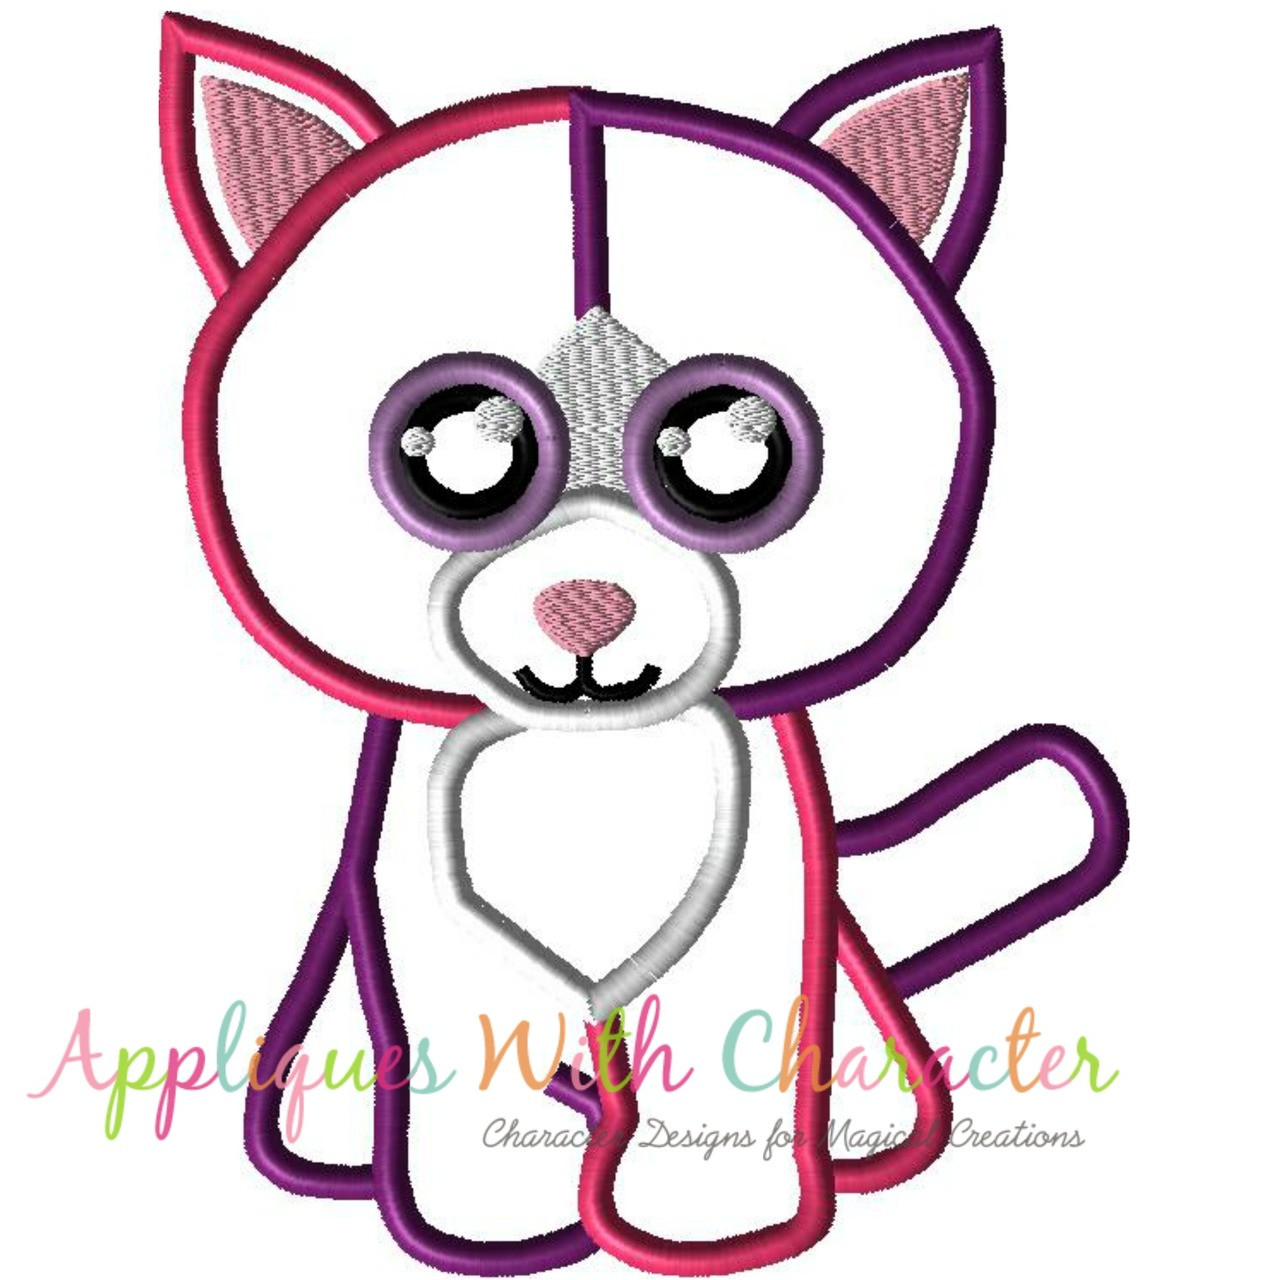 9c1e406083c Beanie Boo Pellie Cat Applique Design by Appliques With Character